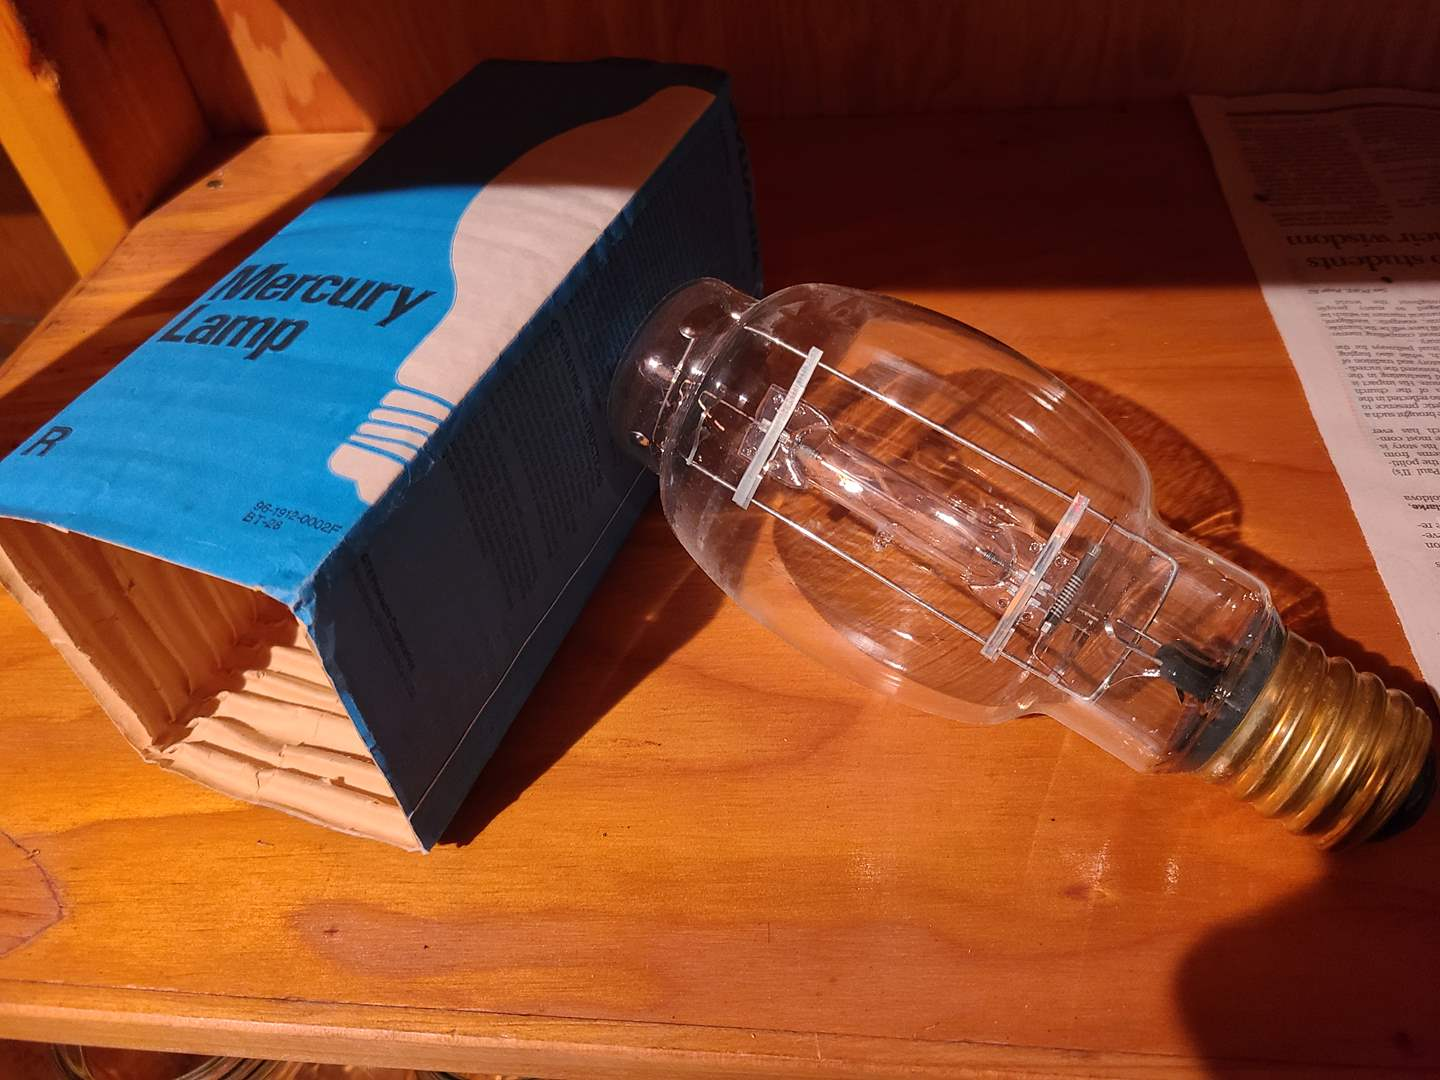 Lot#125 - Vintage Mercury Lamp in Packaging  (main image)